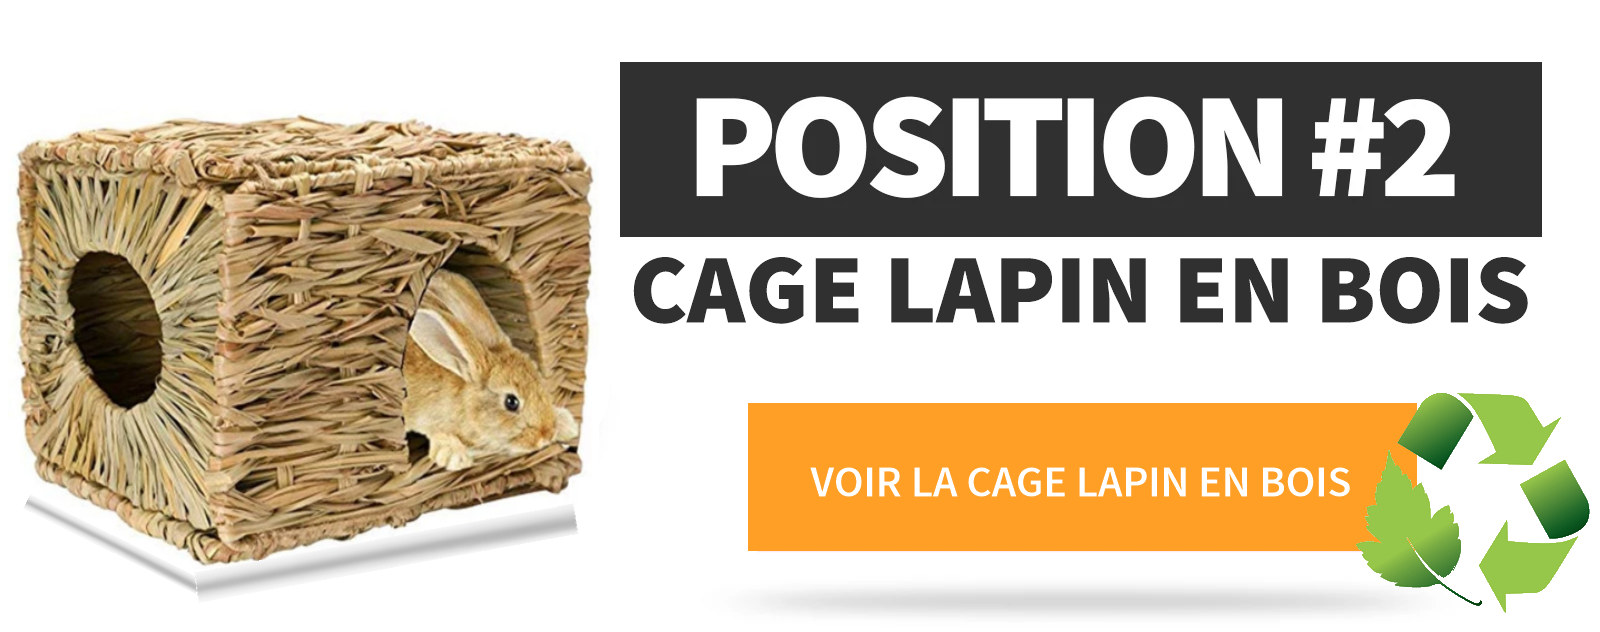 Cage Lapin Bois